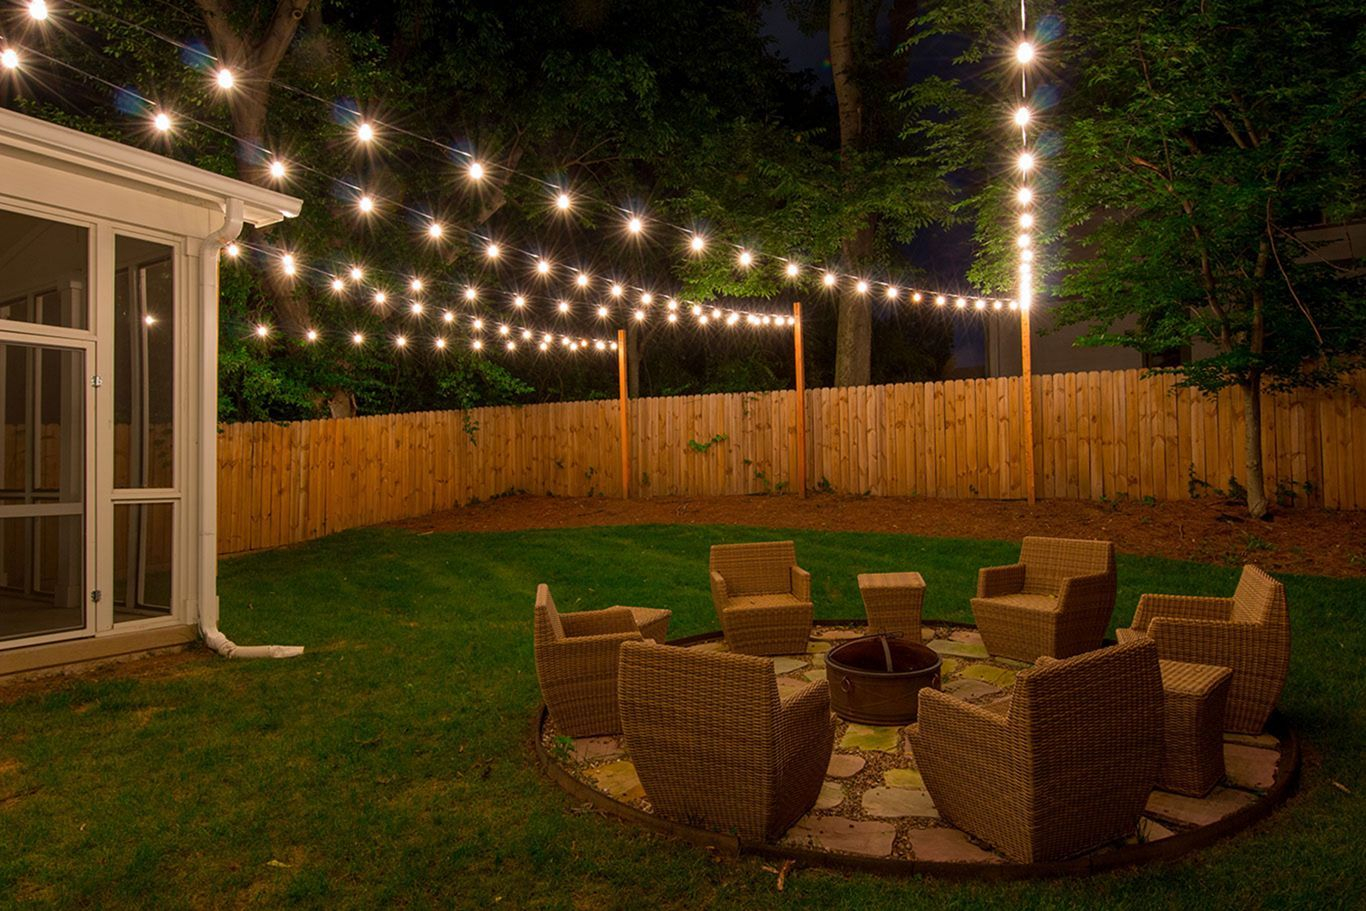 15 Wonderful Diy Backyard Lighting Ideas For Small Party At Night with Backyard Party Lighting Ideas